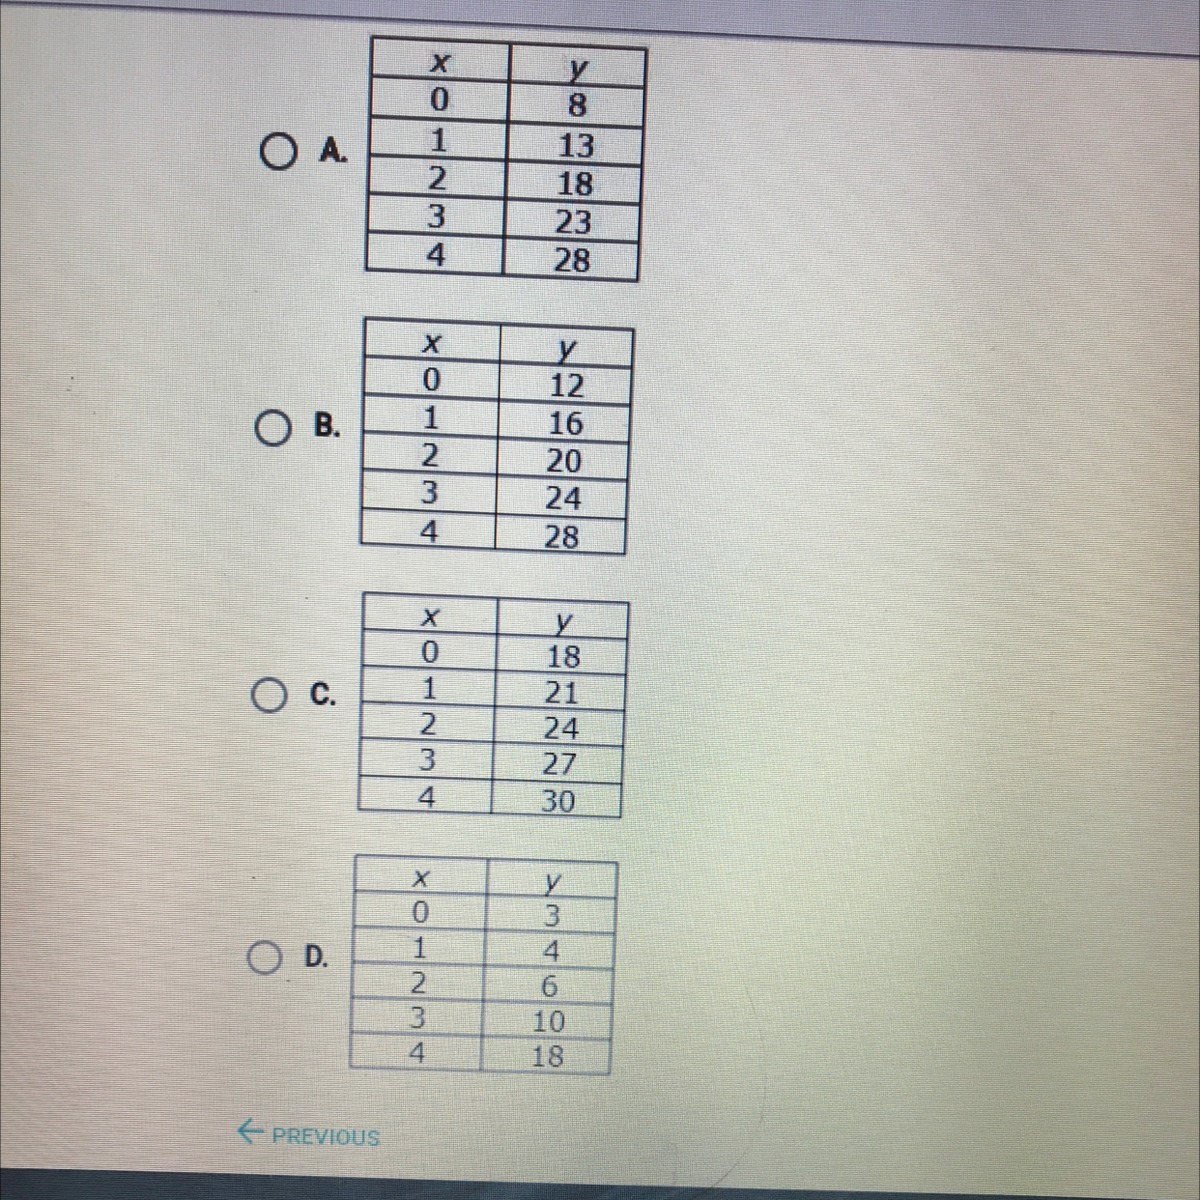 Which Table Represents A Function That Does Not Have A